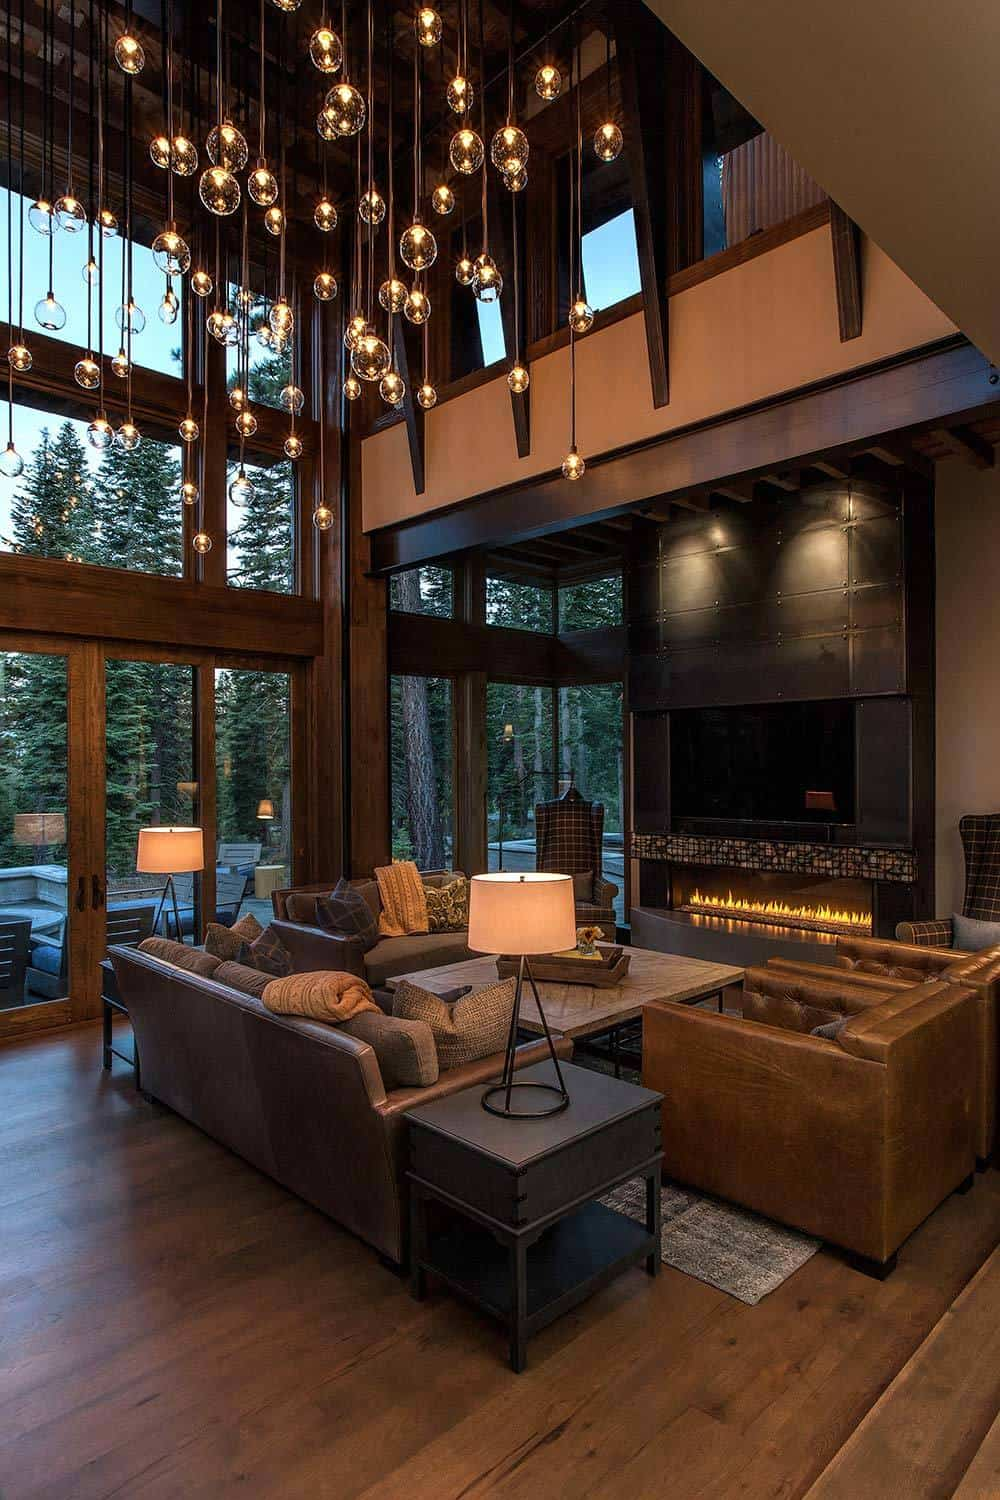 Lake tahoe getaway features contemporary barn aesthetic for Rustic style interior